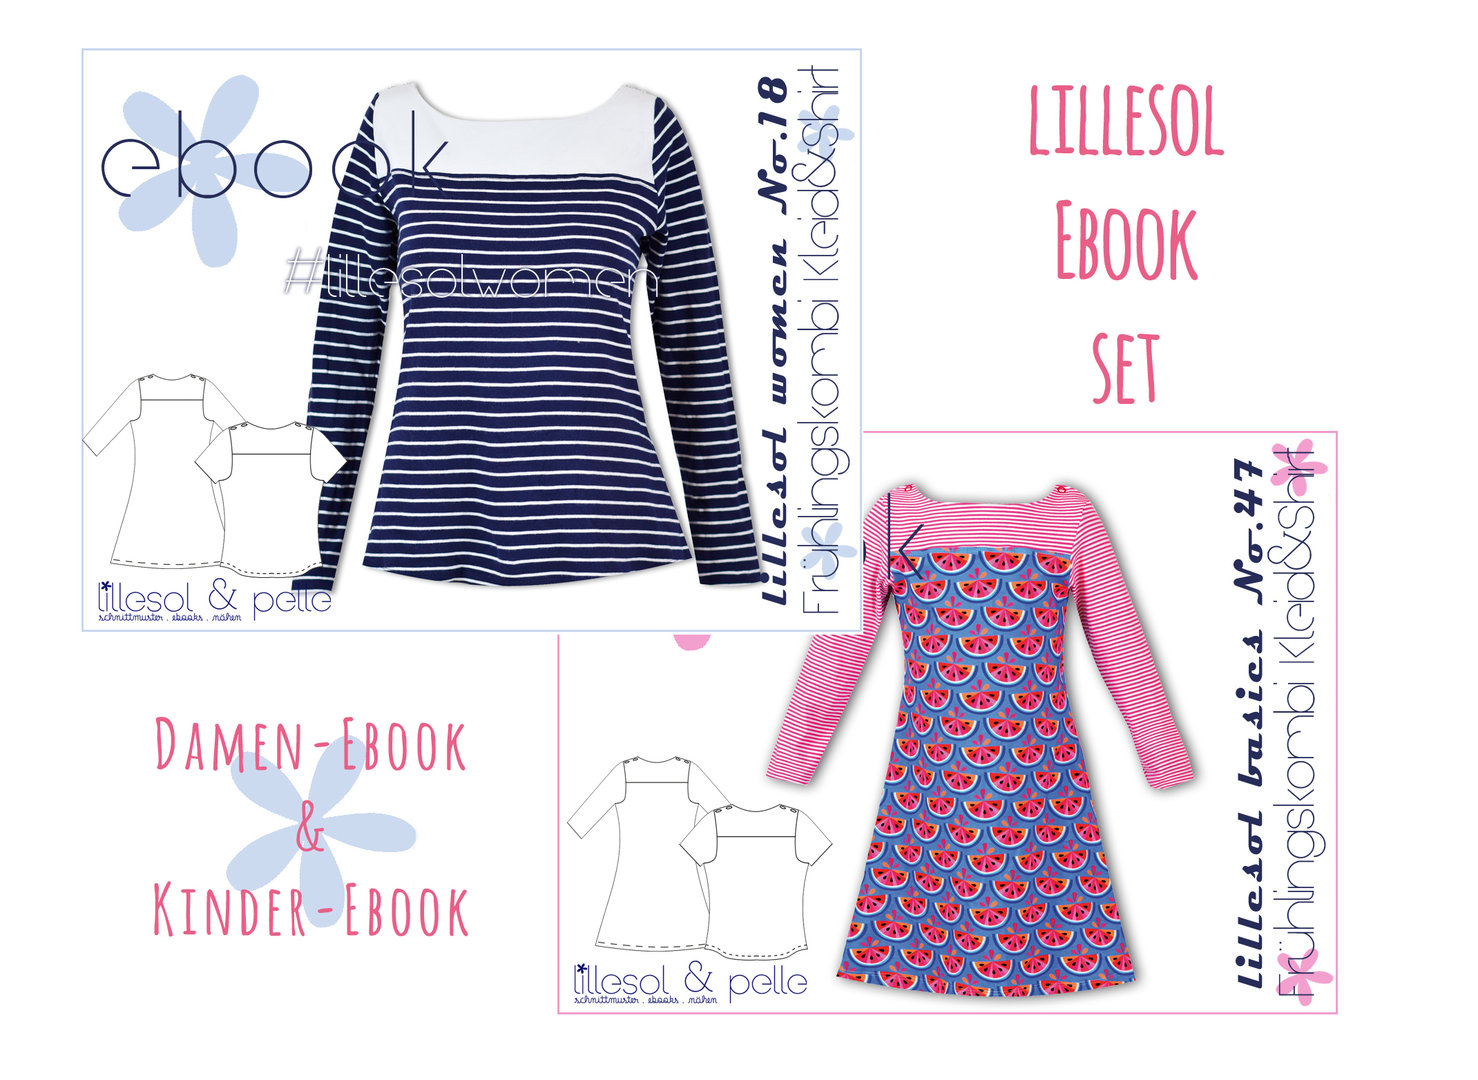 lillesol ebook set basics No.47 und women No.18